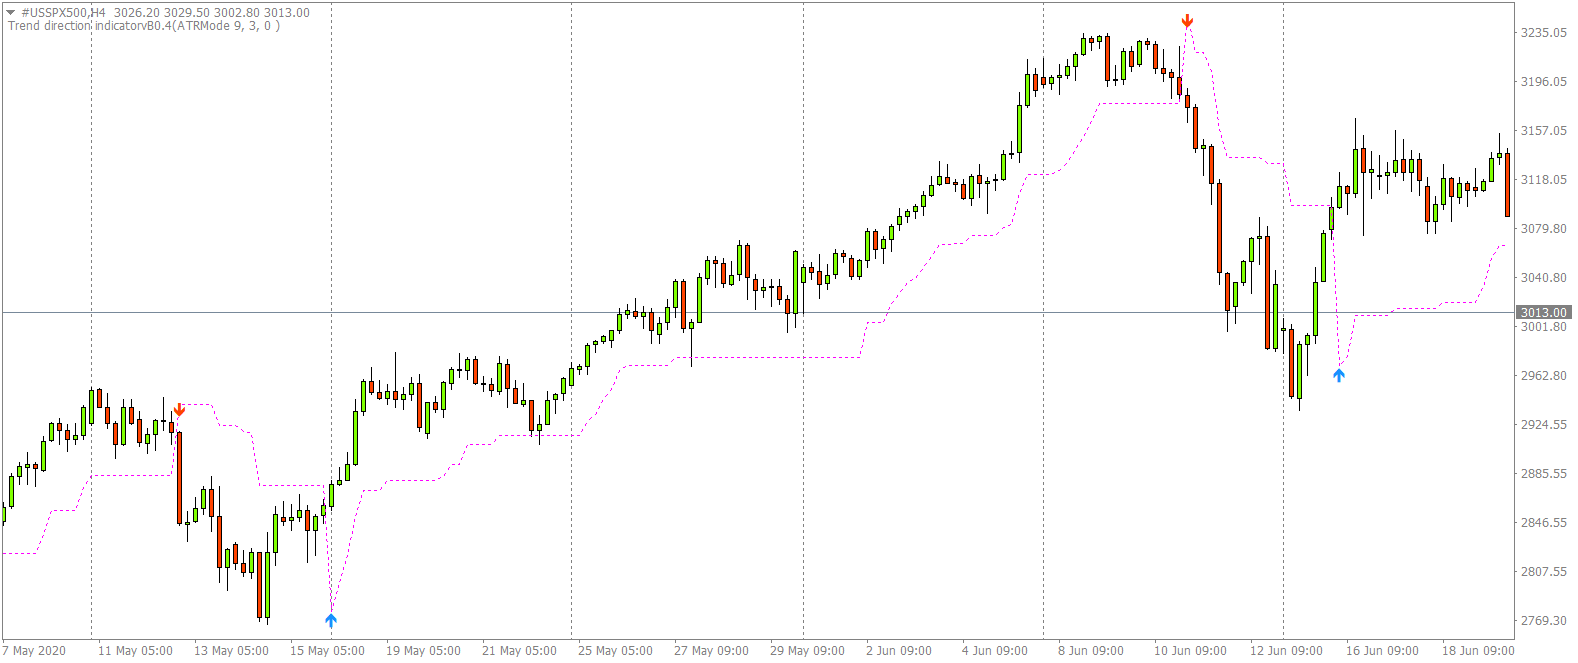 Trend Direction Indicator: When should you short?